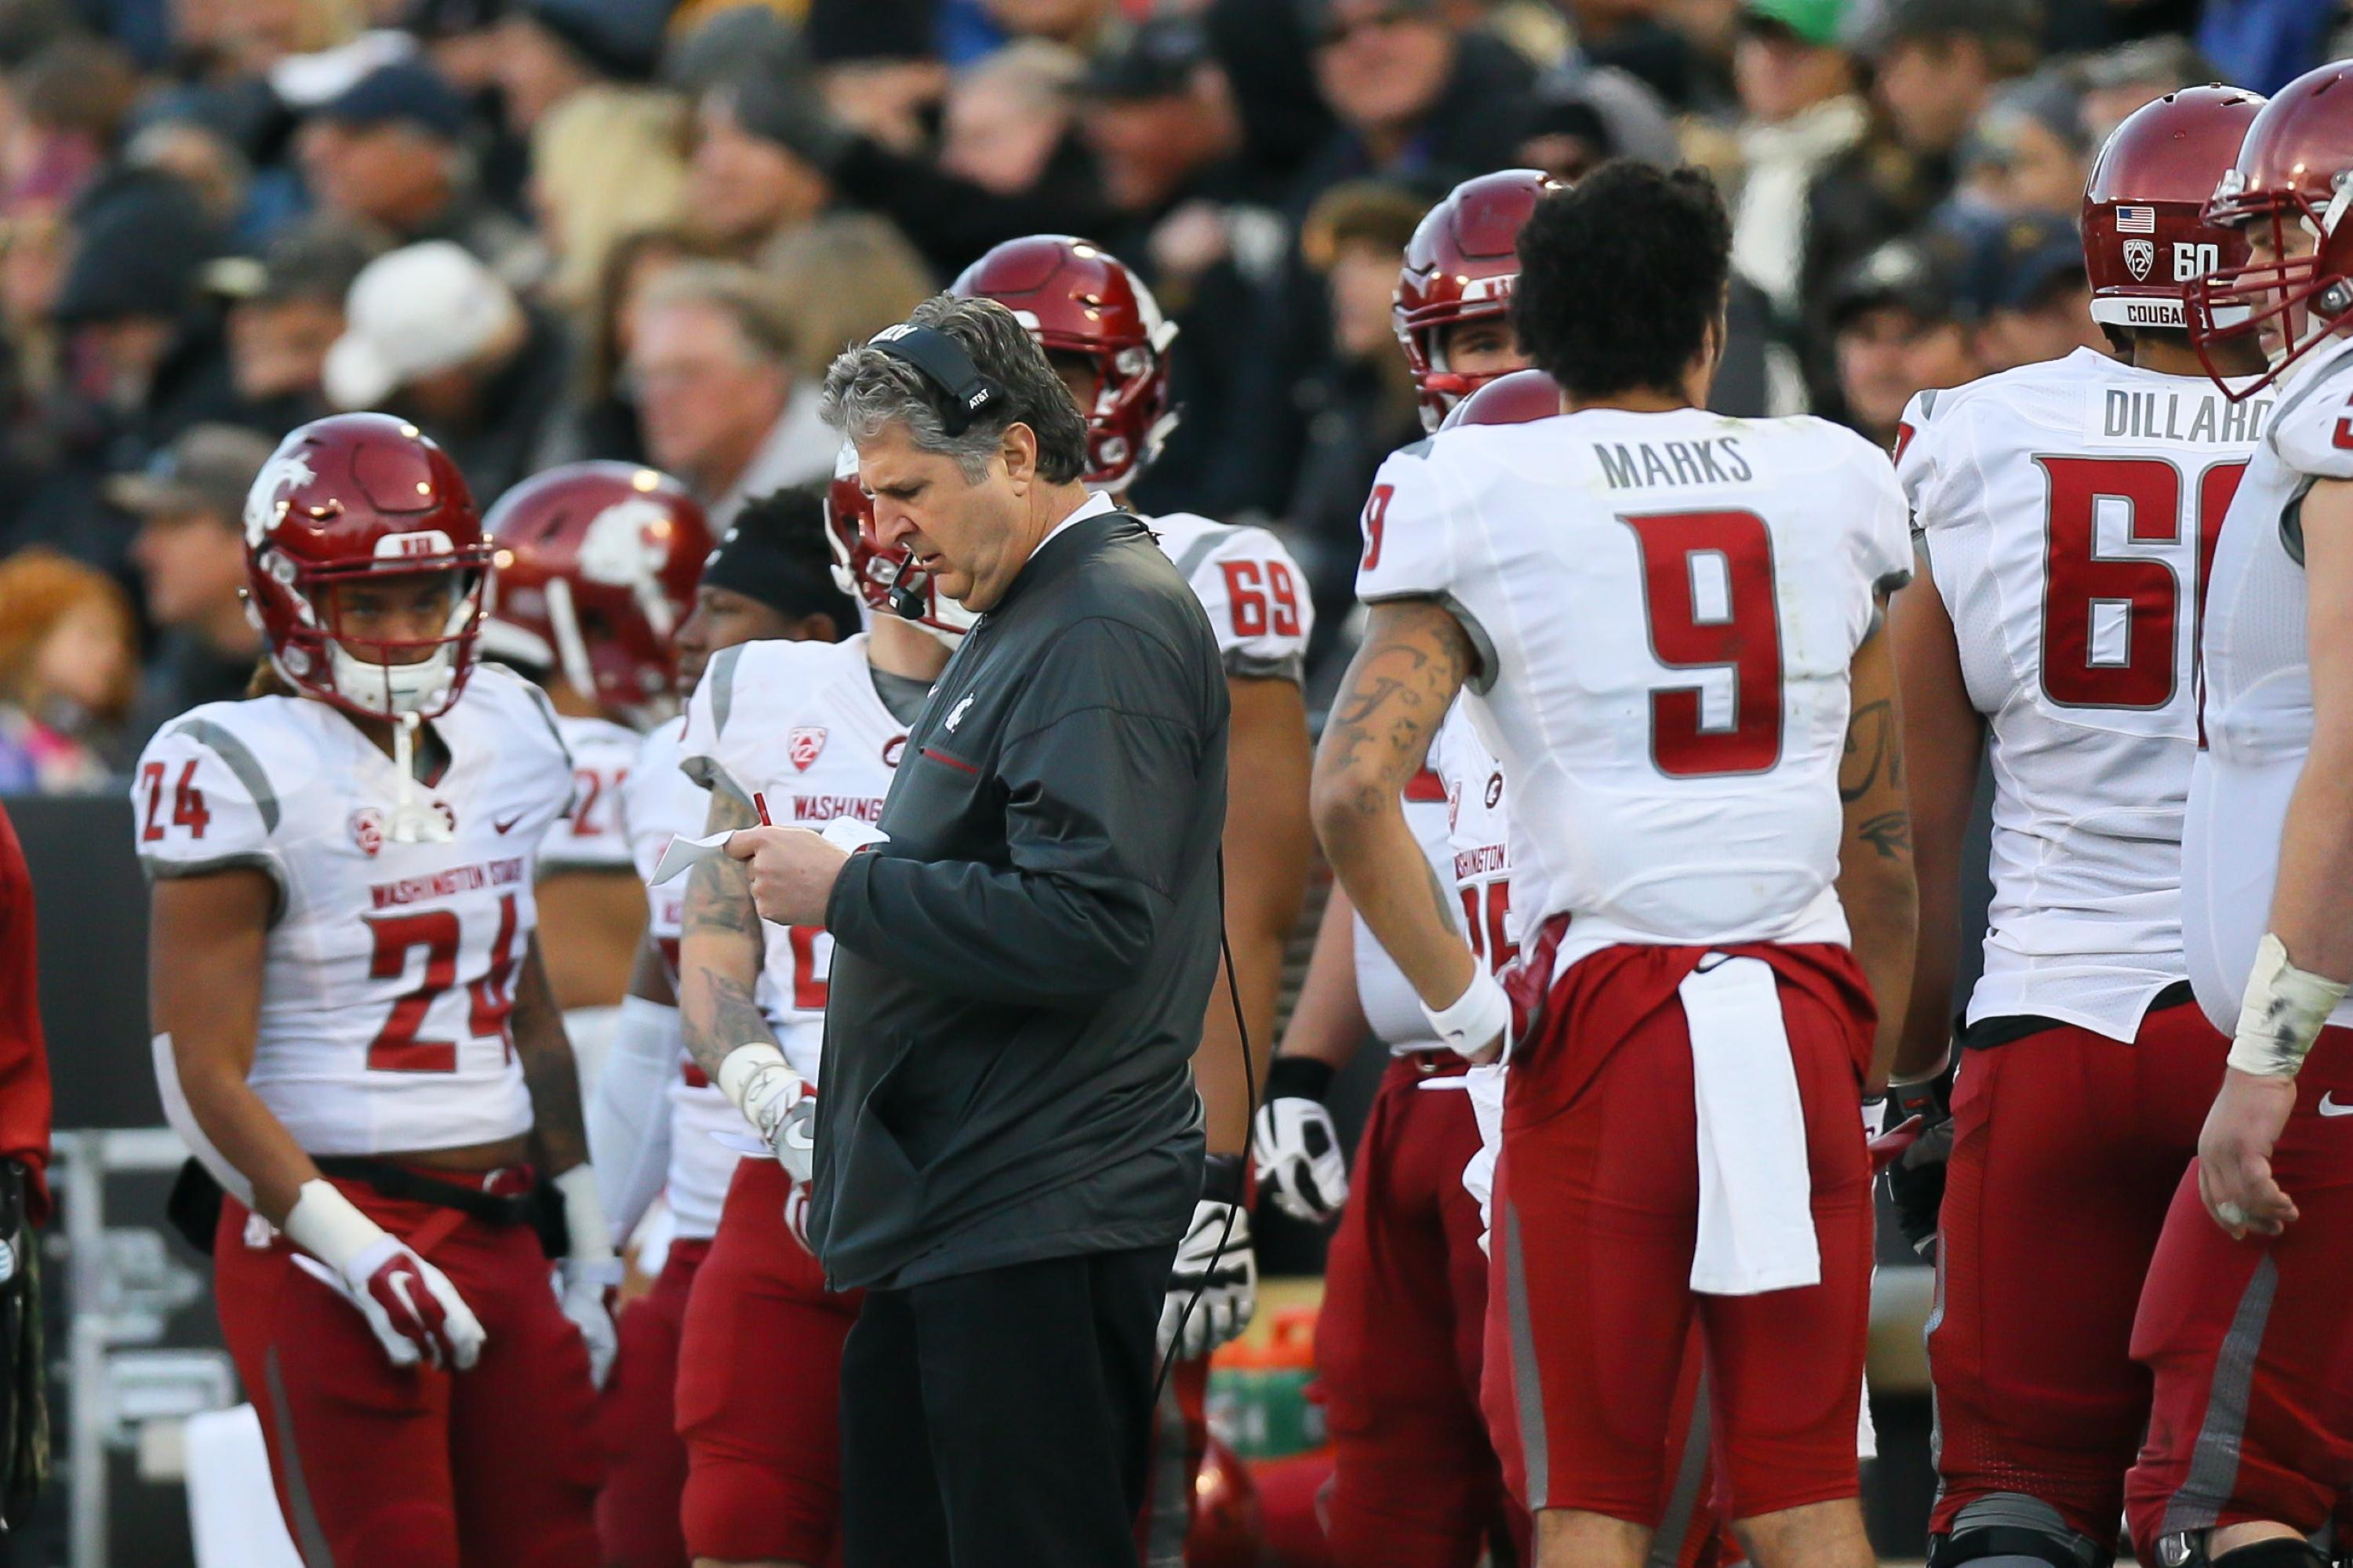 Mike Leach 'not particularly sorry' about tweeting doctored video of Barack Obama speech